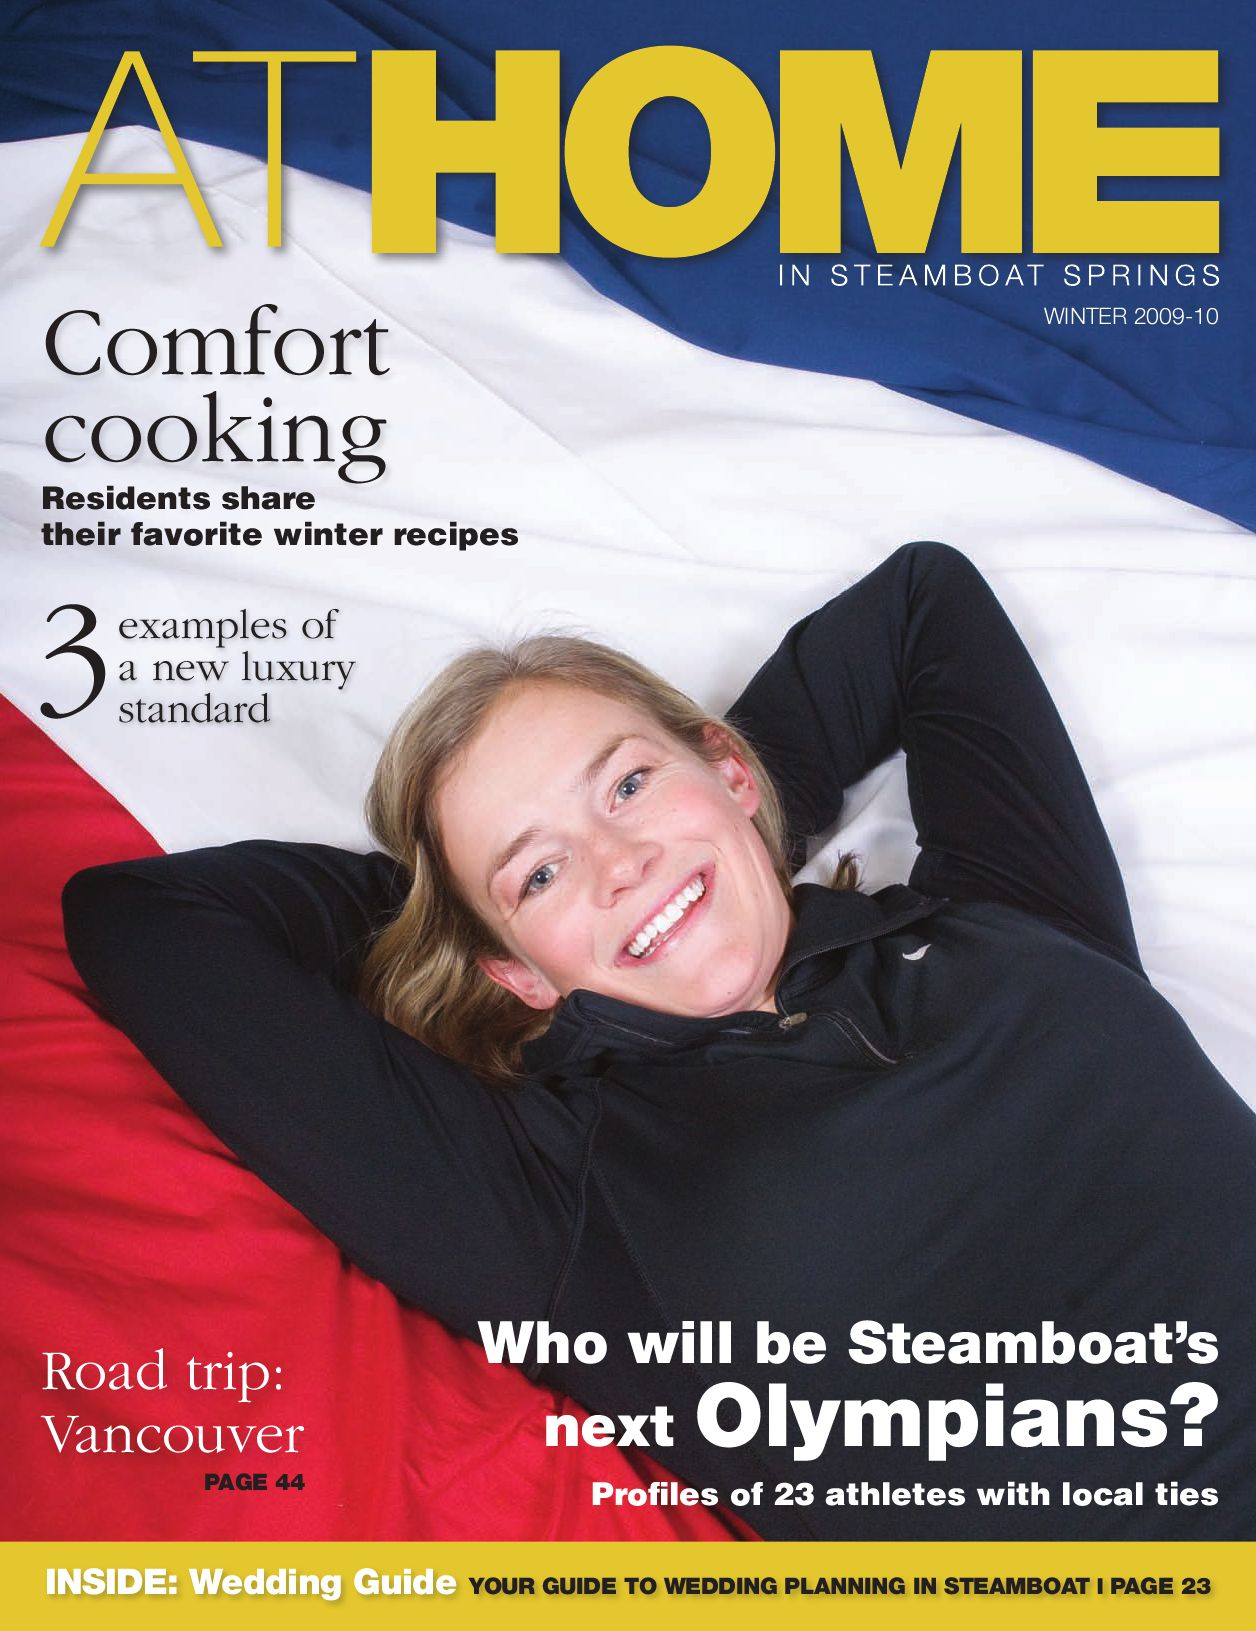 At Home Winter 2009-2010 by Steamboat Pilot & Today - issuu